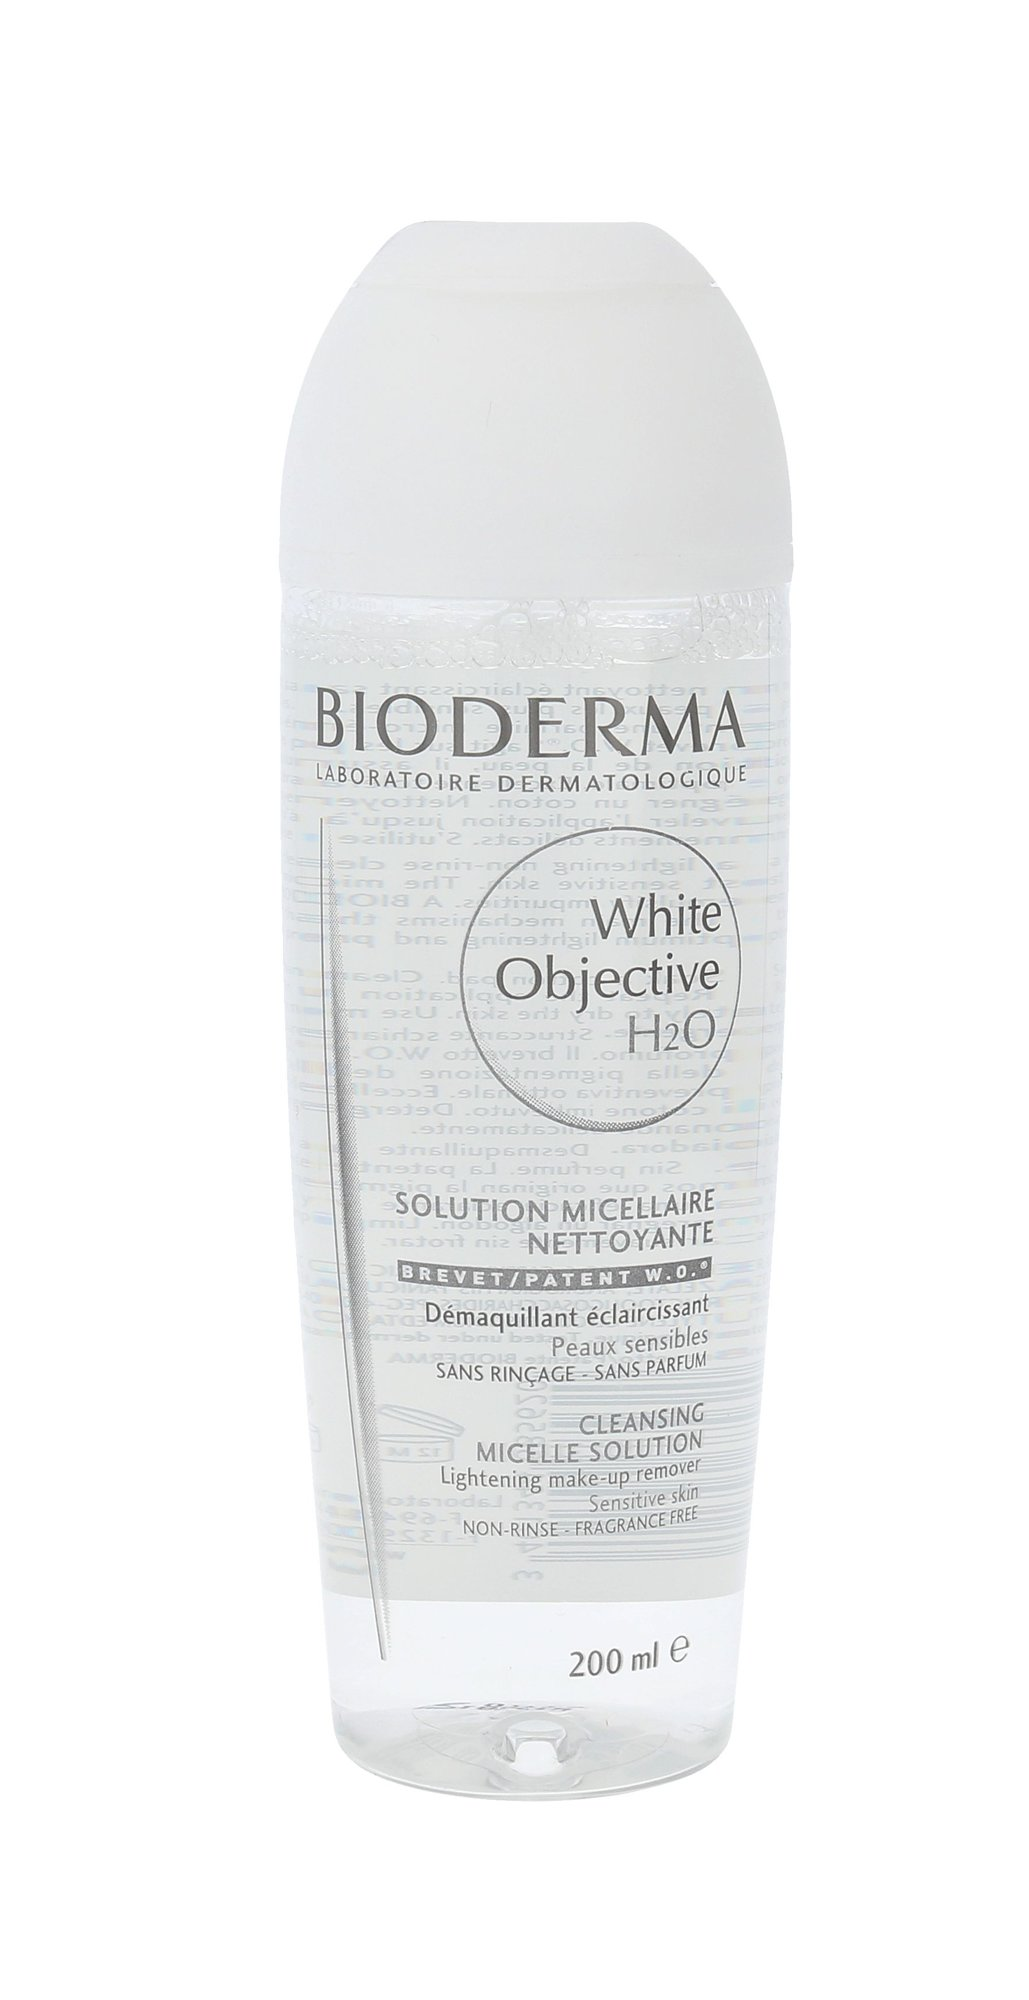 BIODERMA White Objective Cosmetic 200ml